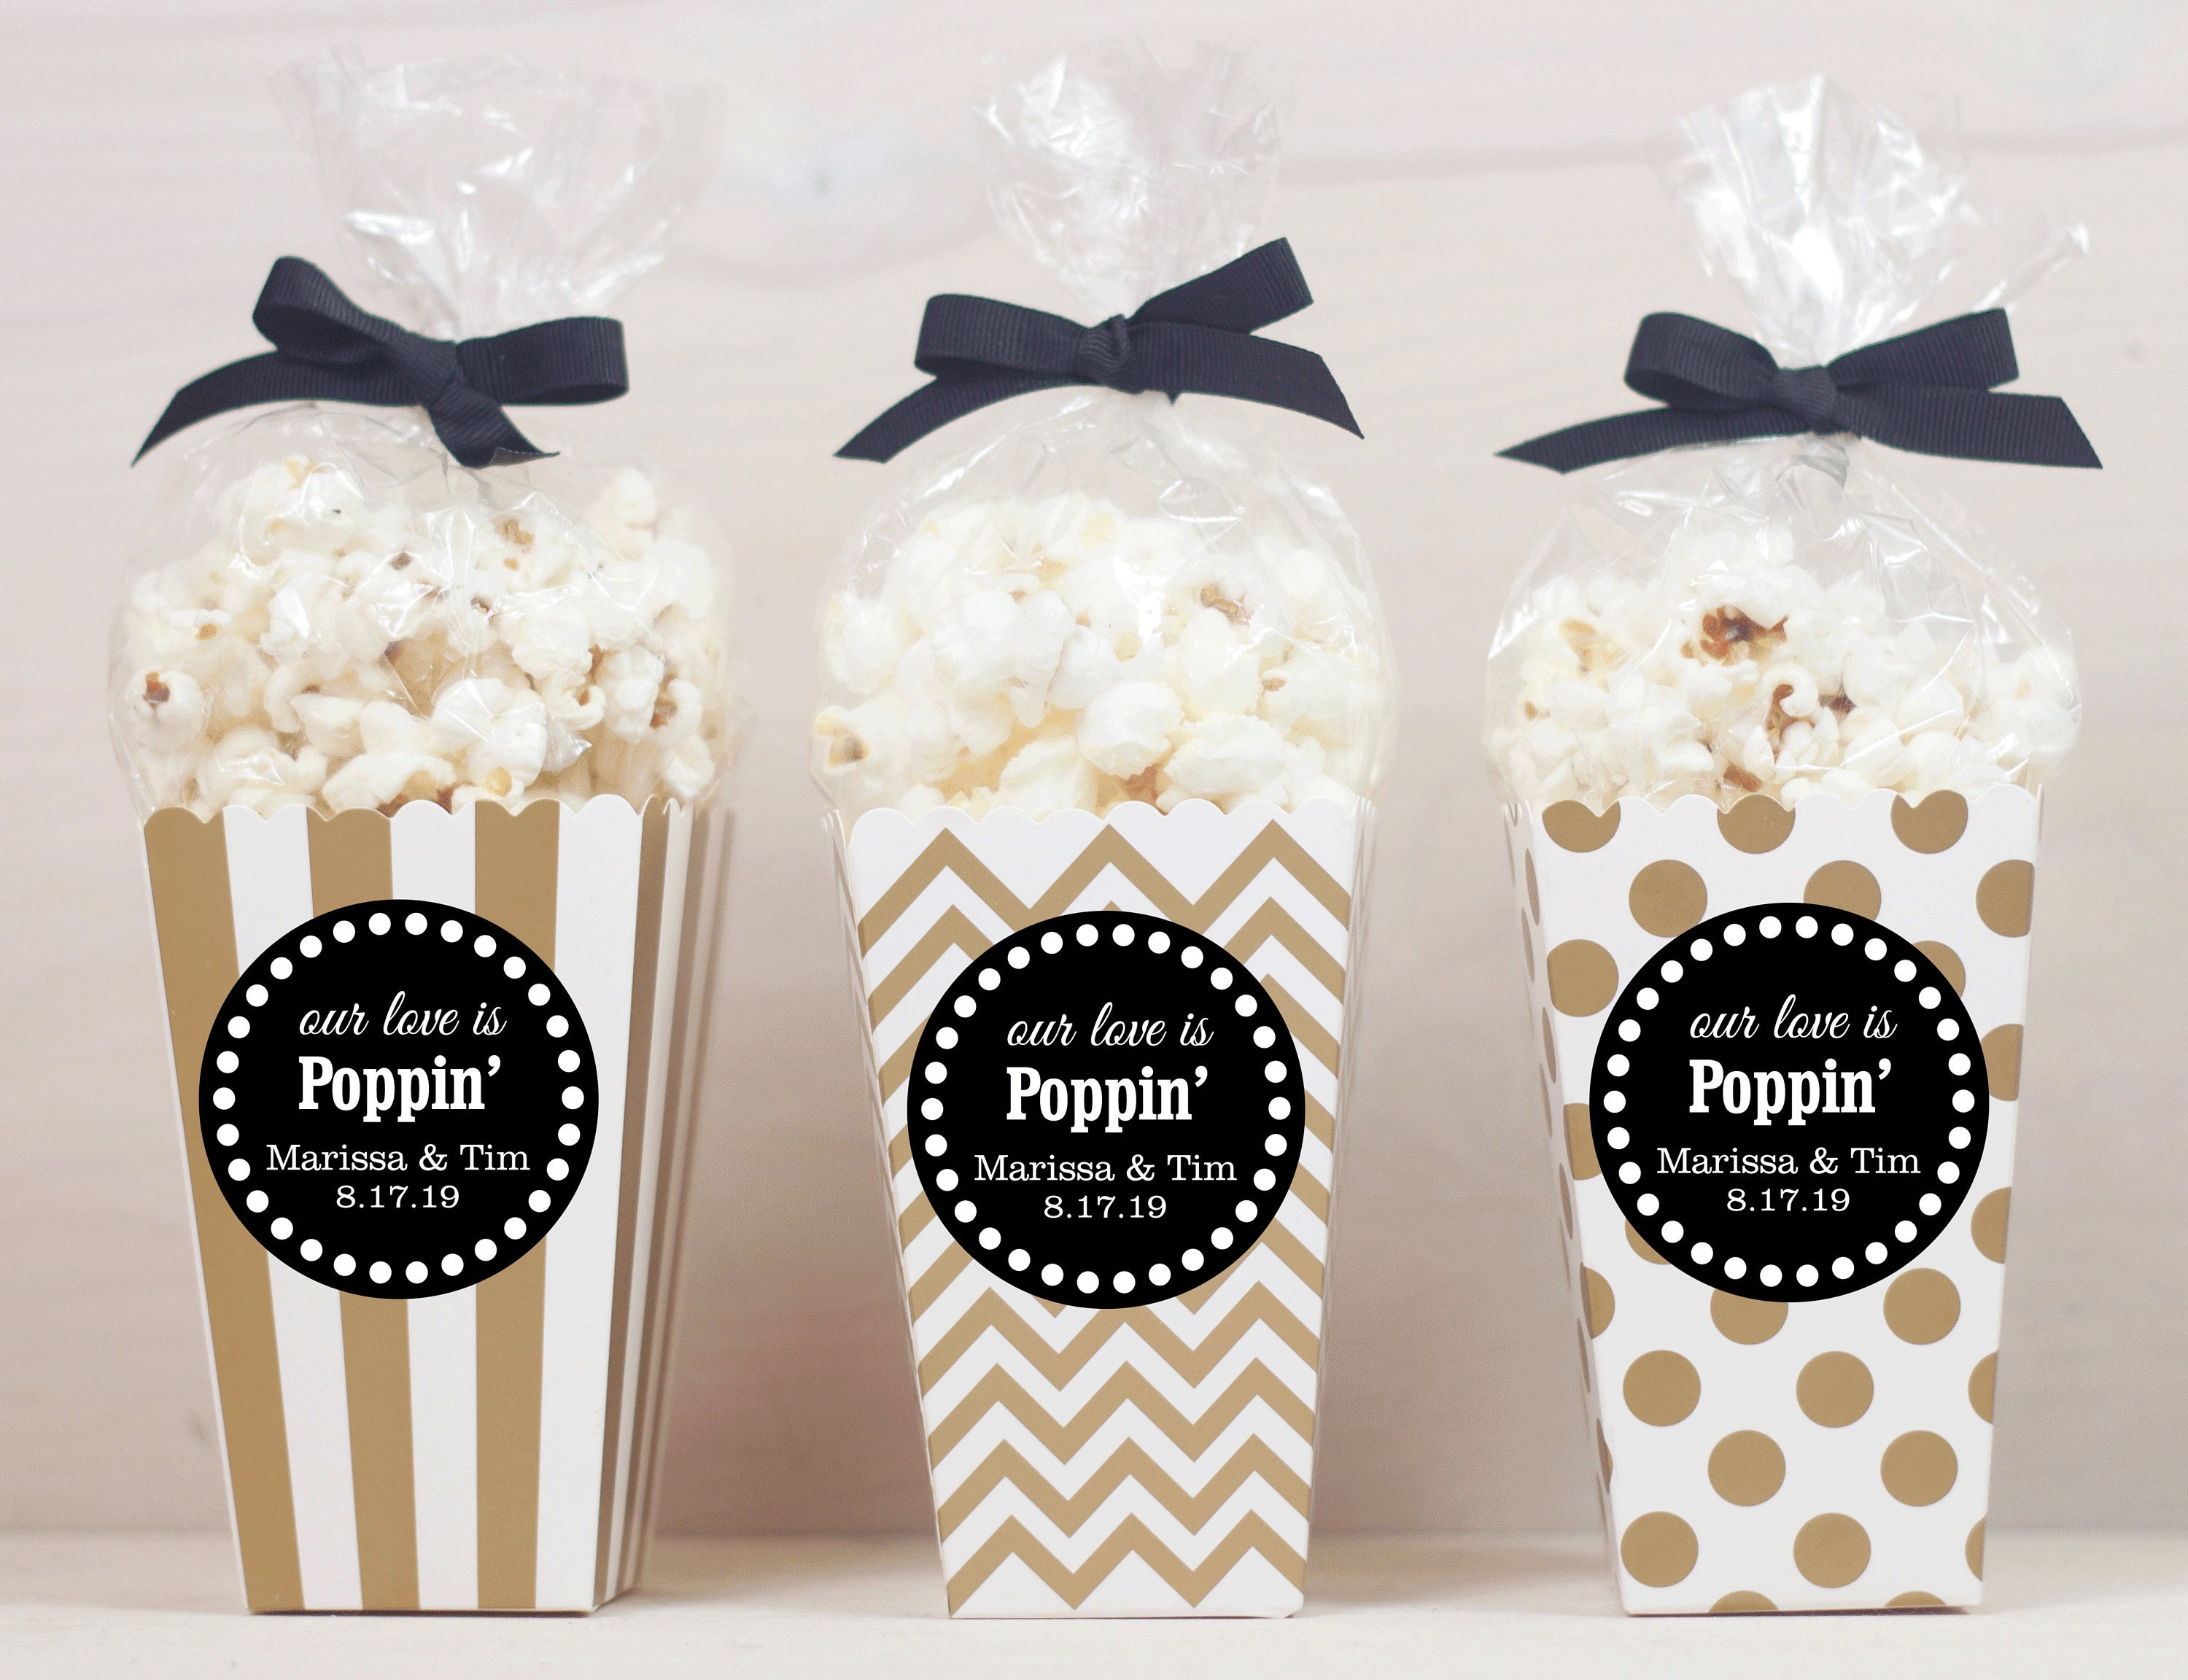 12 Custom Popcorn Box Favors Wedding Favors Personalized